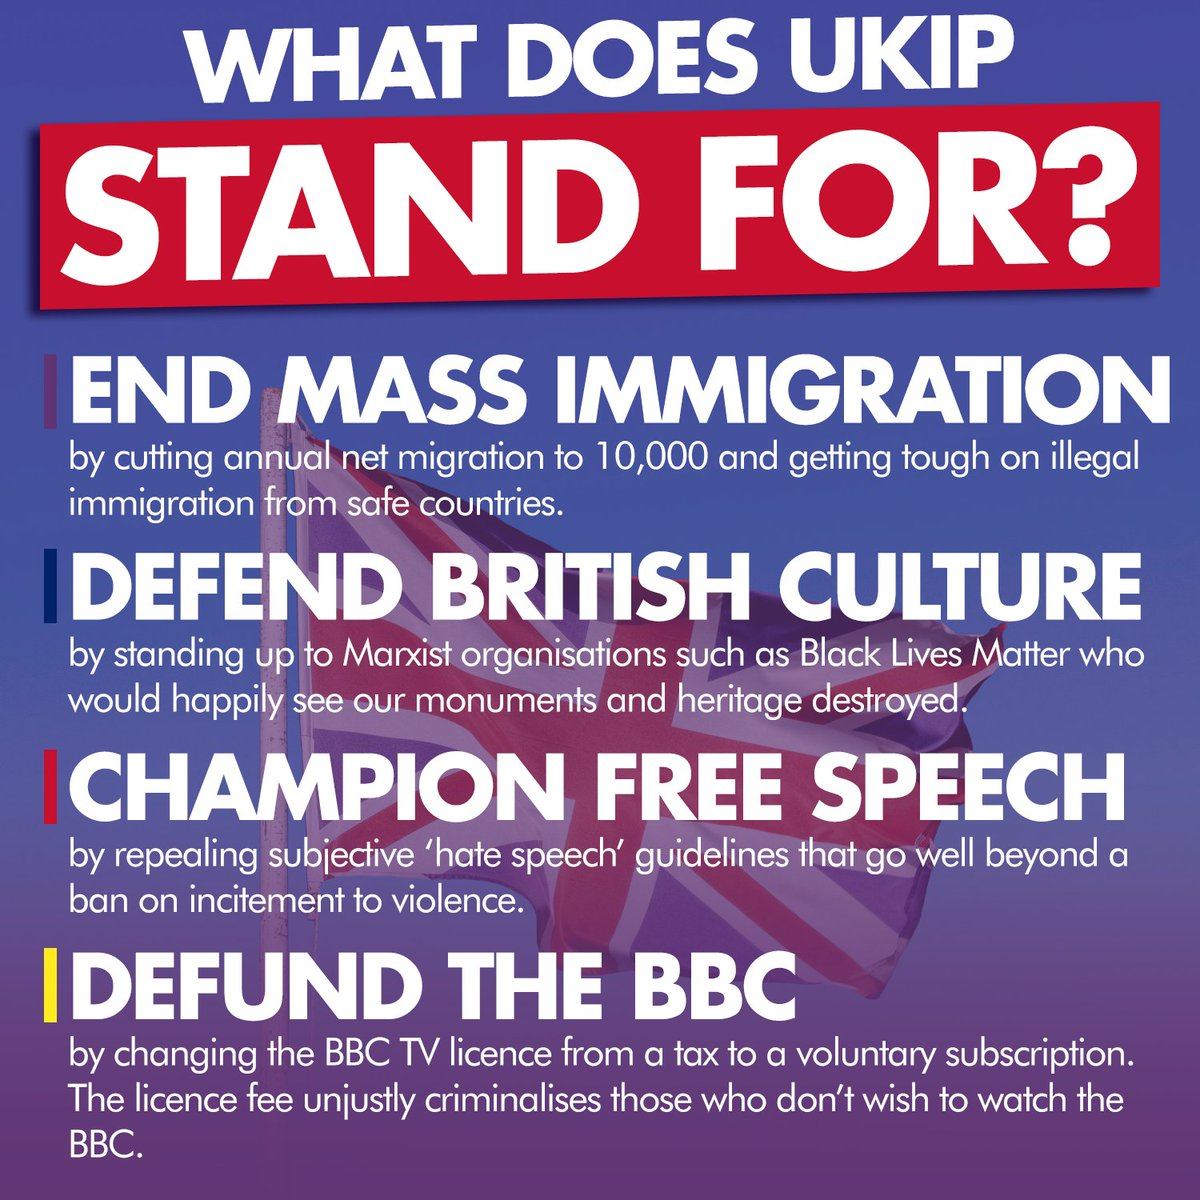 ✍️ Brexit was only the beginning. #UKIP has a range of common sense policies addressing issues that the Establishment are scared of.  With membership starting from as low as £2, there has never been a better time to join UKIP and stand up for Britain ➡️